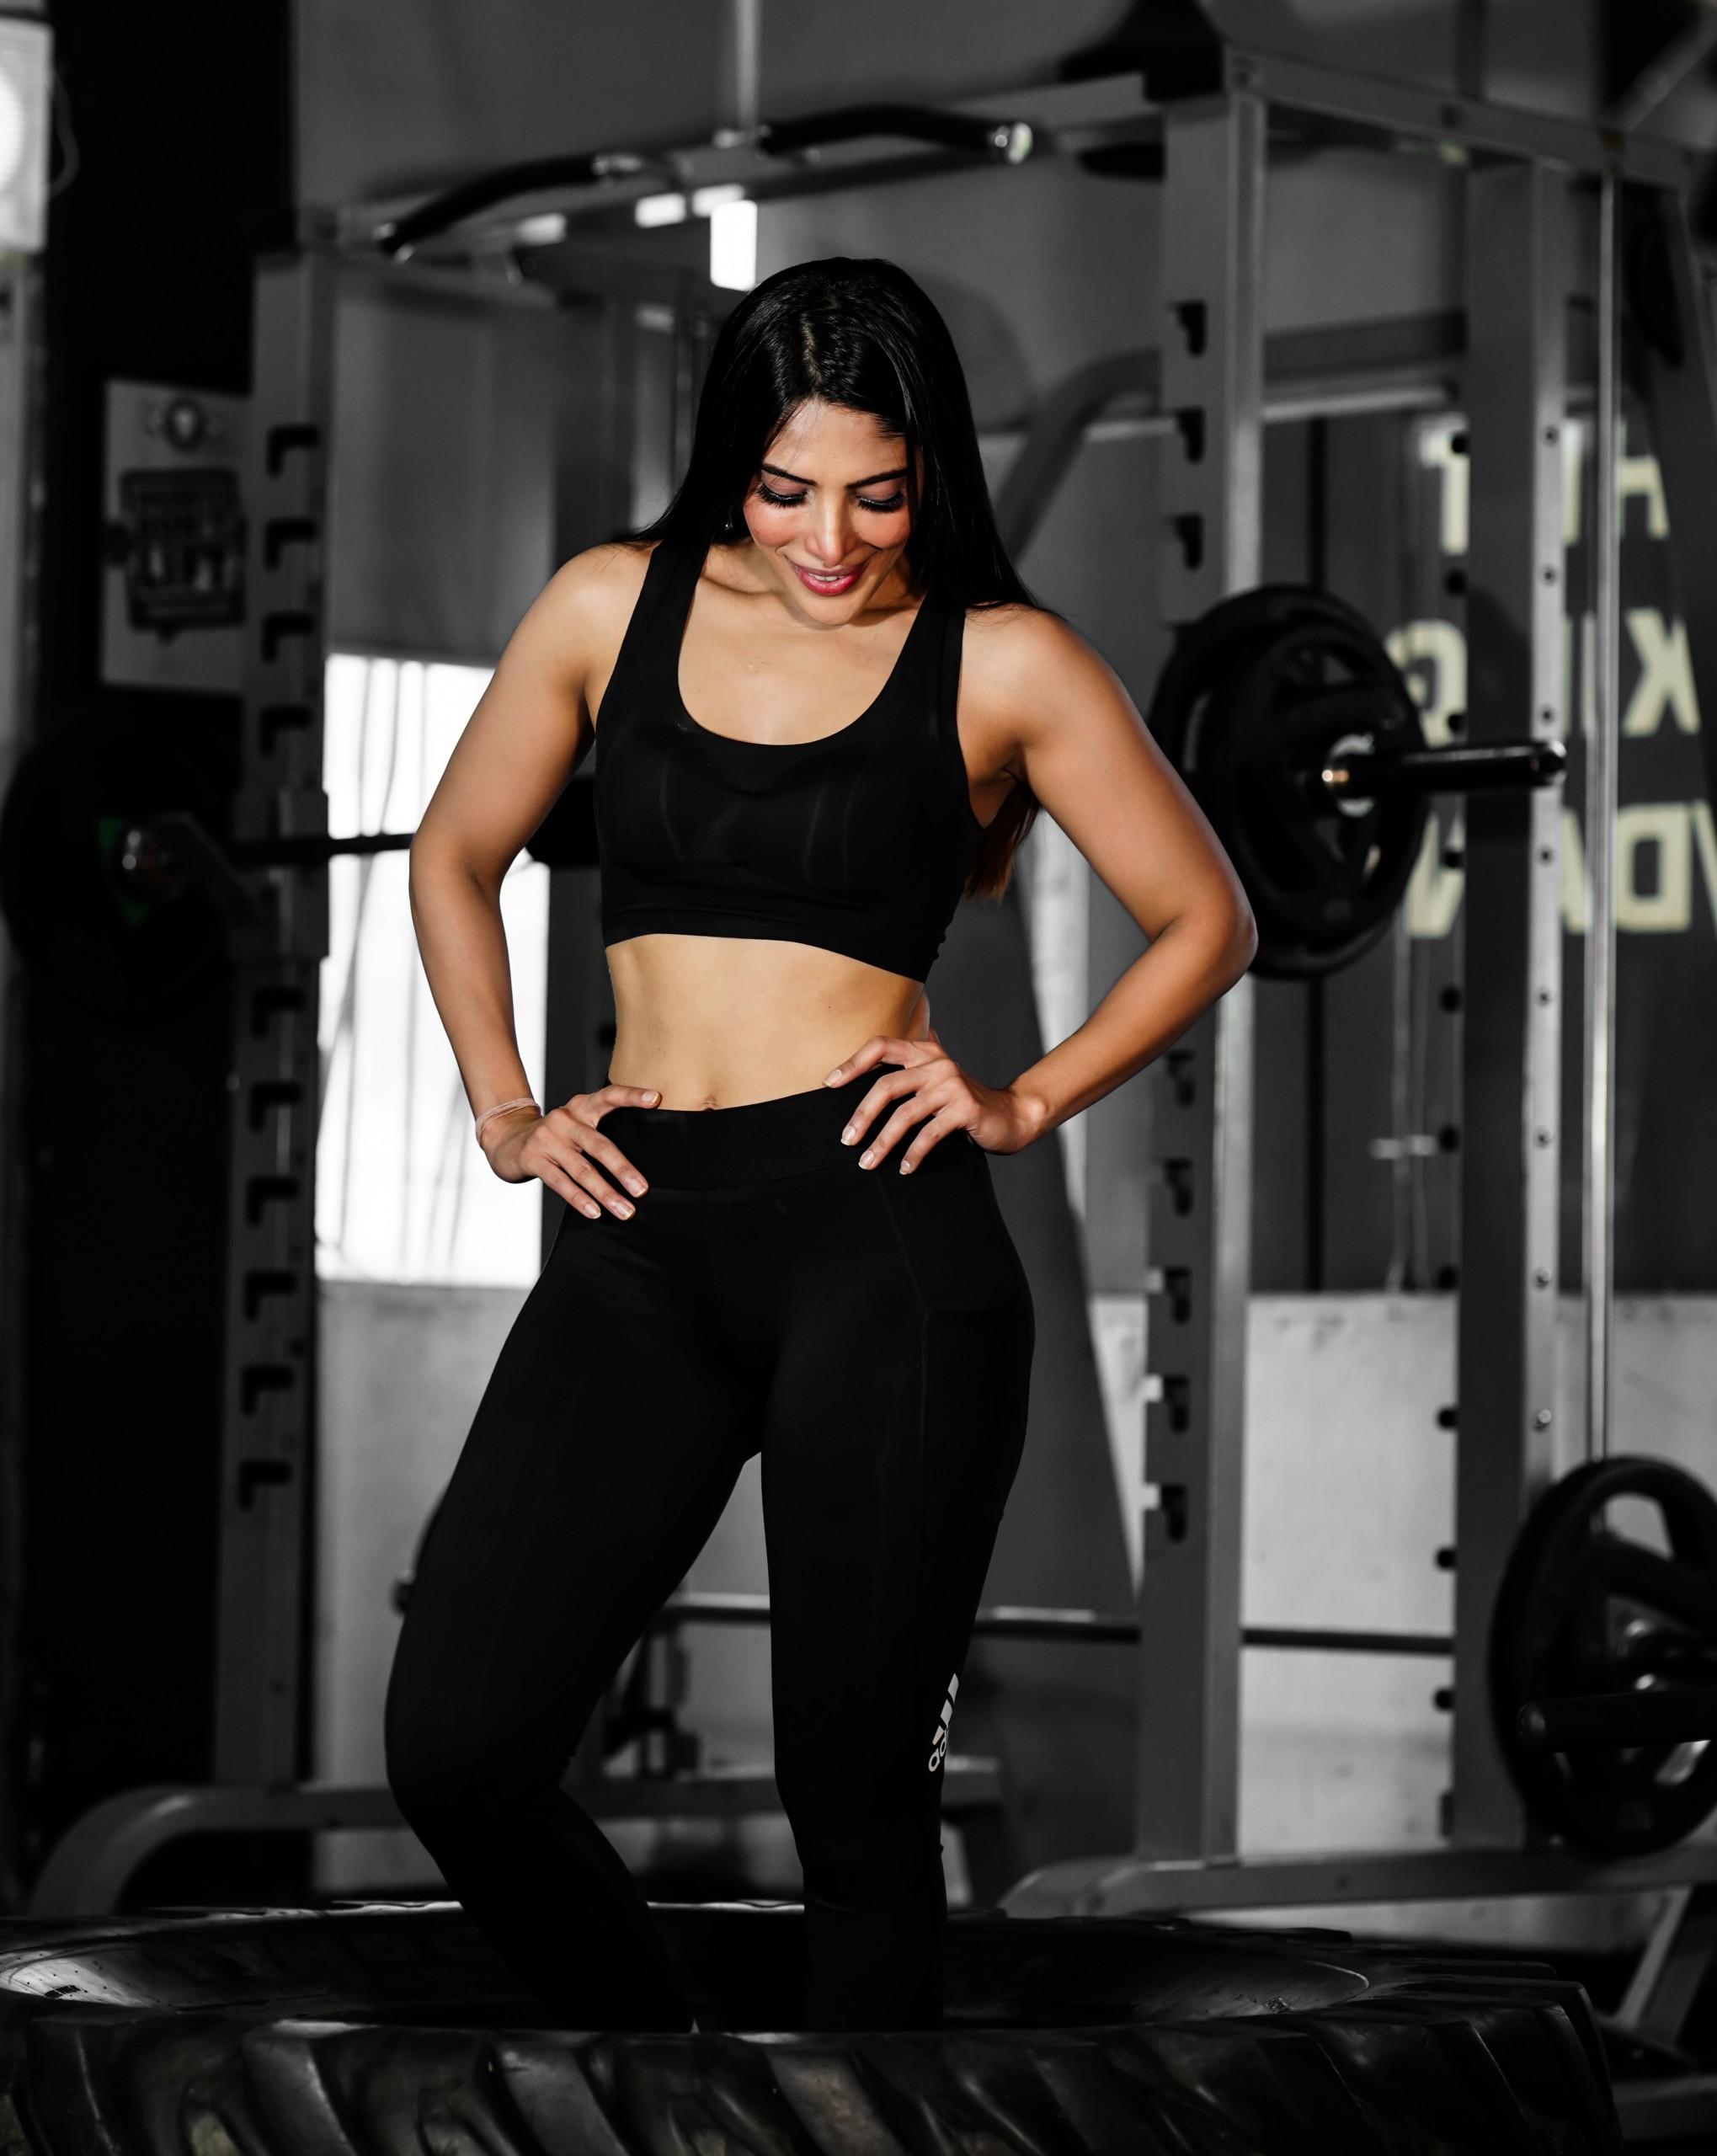 Female model after workout in gym